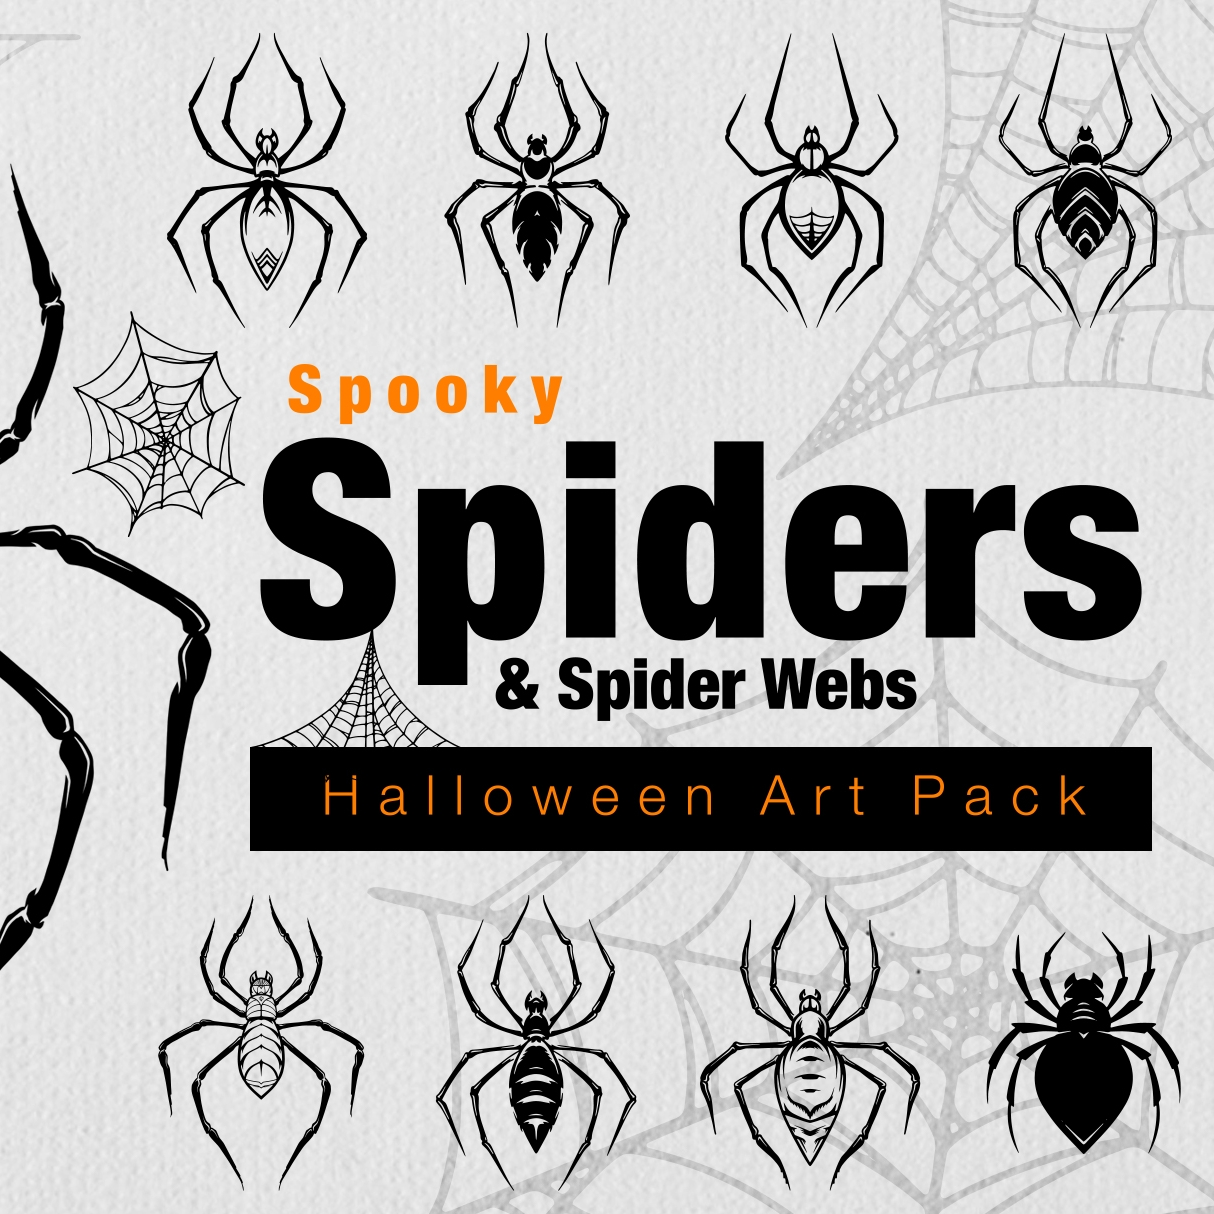 mxmnr-art_pack-spooky_halloween_spiders-cover.jpg